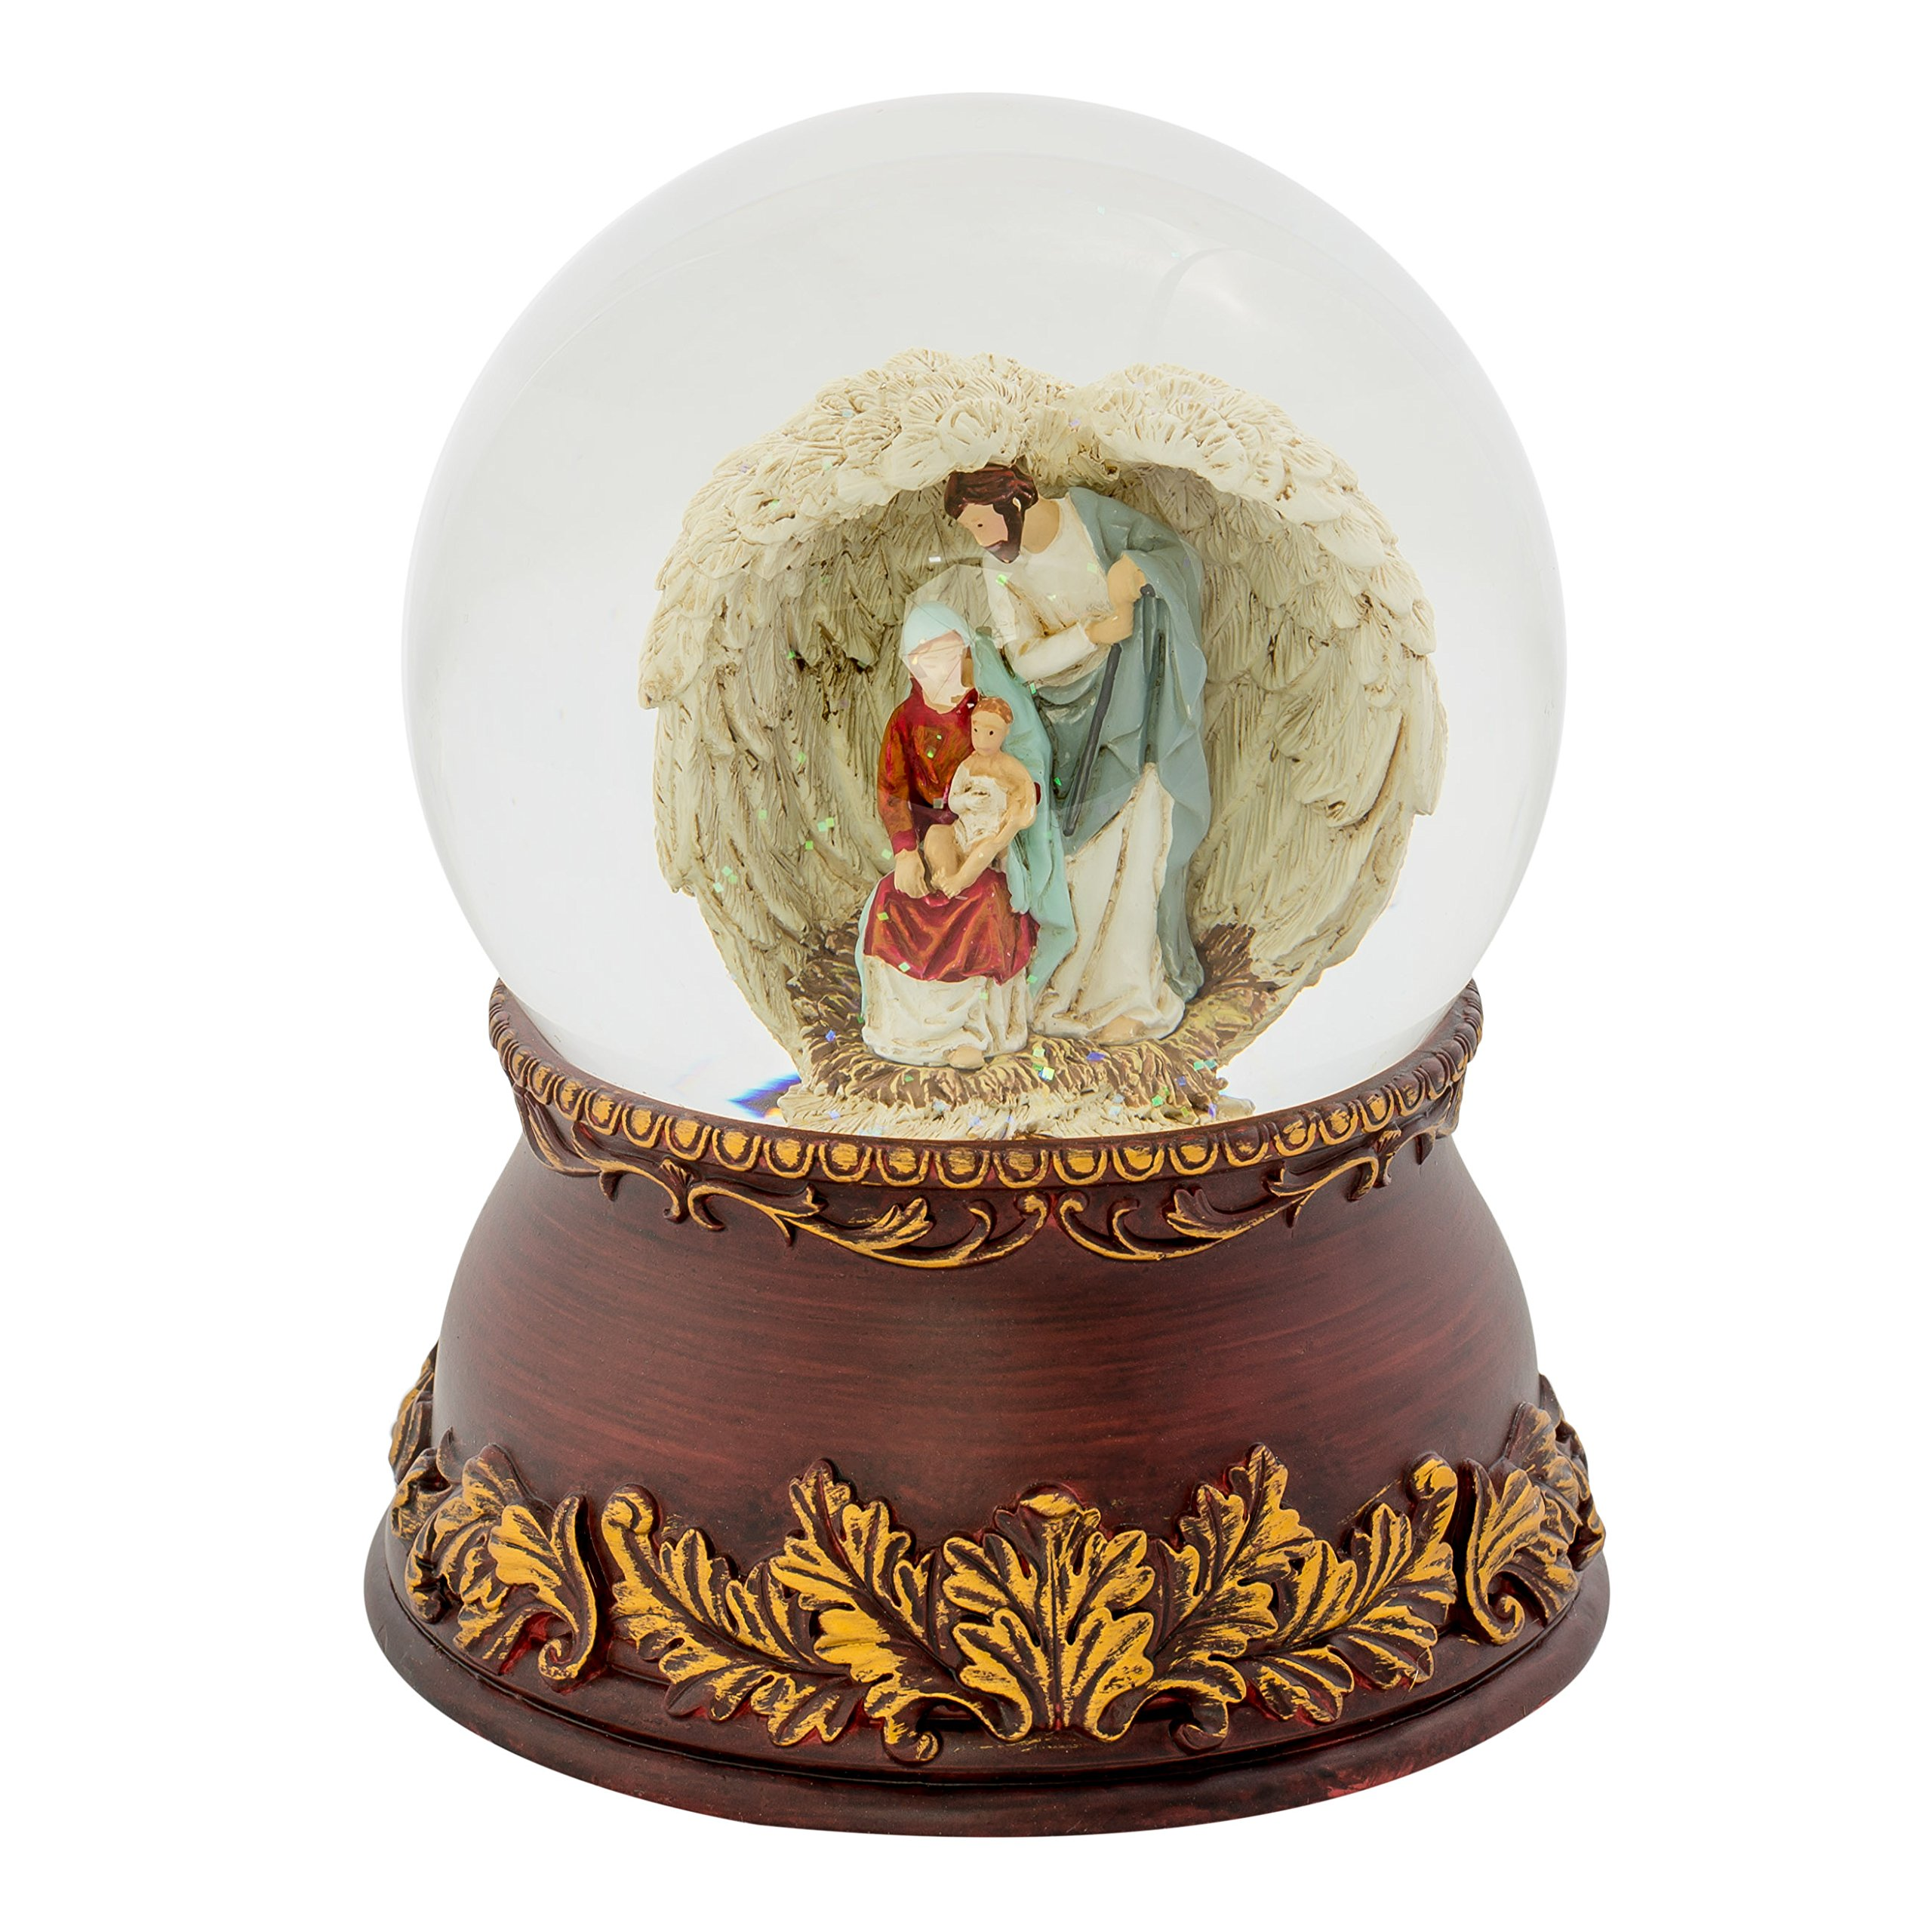 Holy Family Angel Wings Filigree 120MM Musical Glitterdome Water Globe Plays O Come All Ye Faithful by Roman (Image #3)